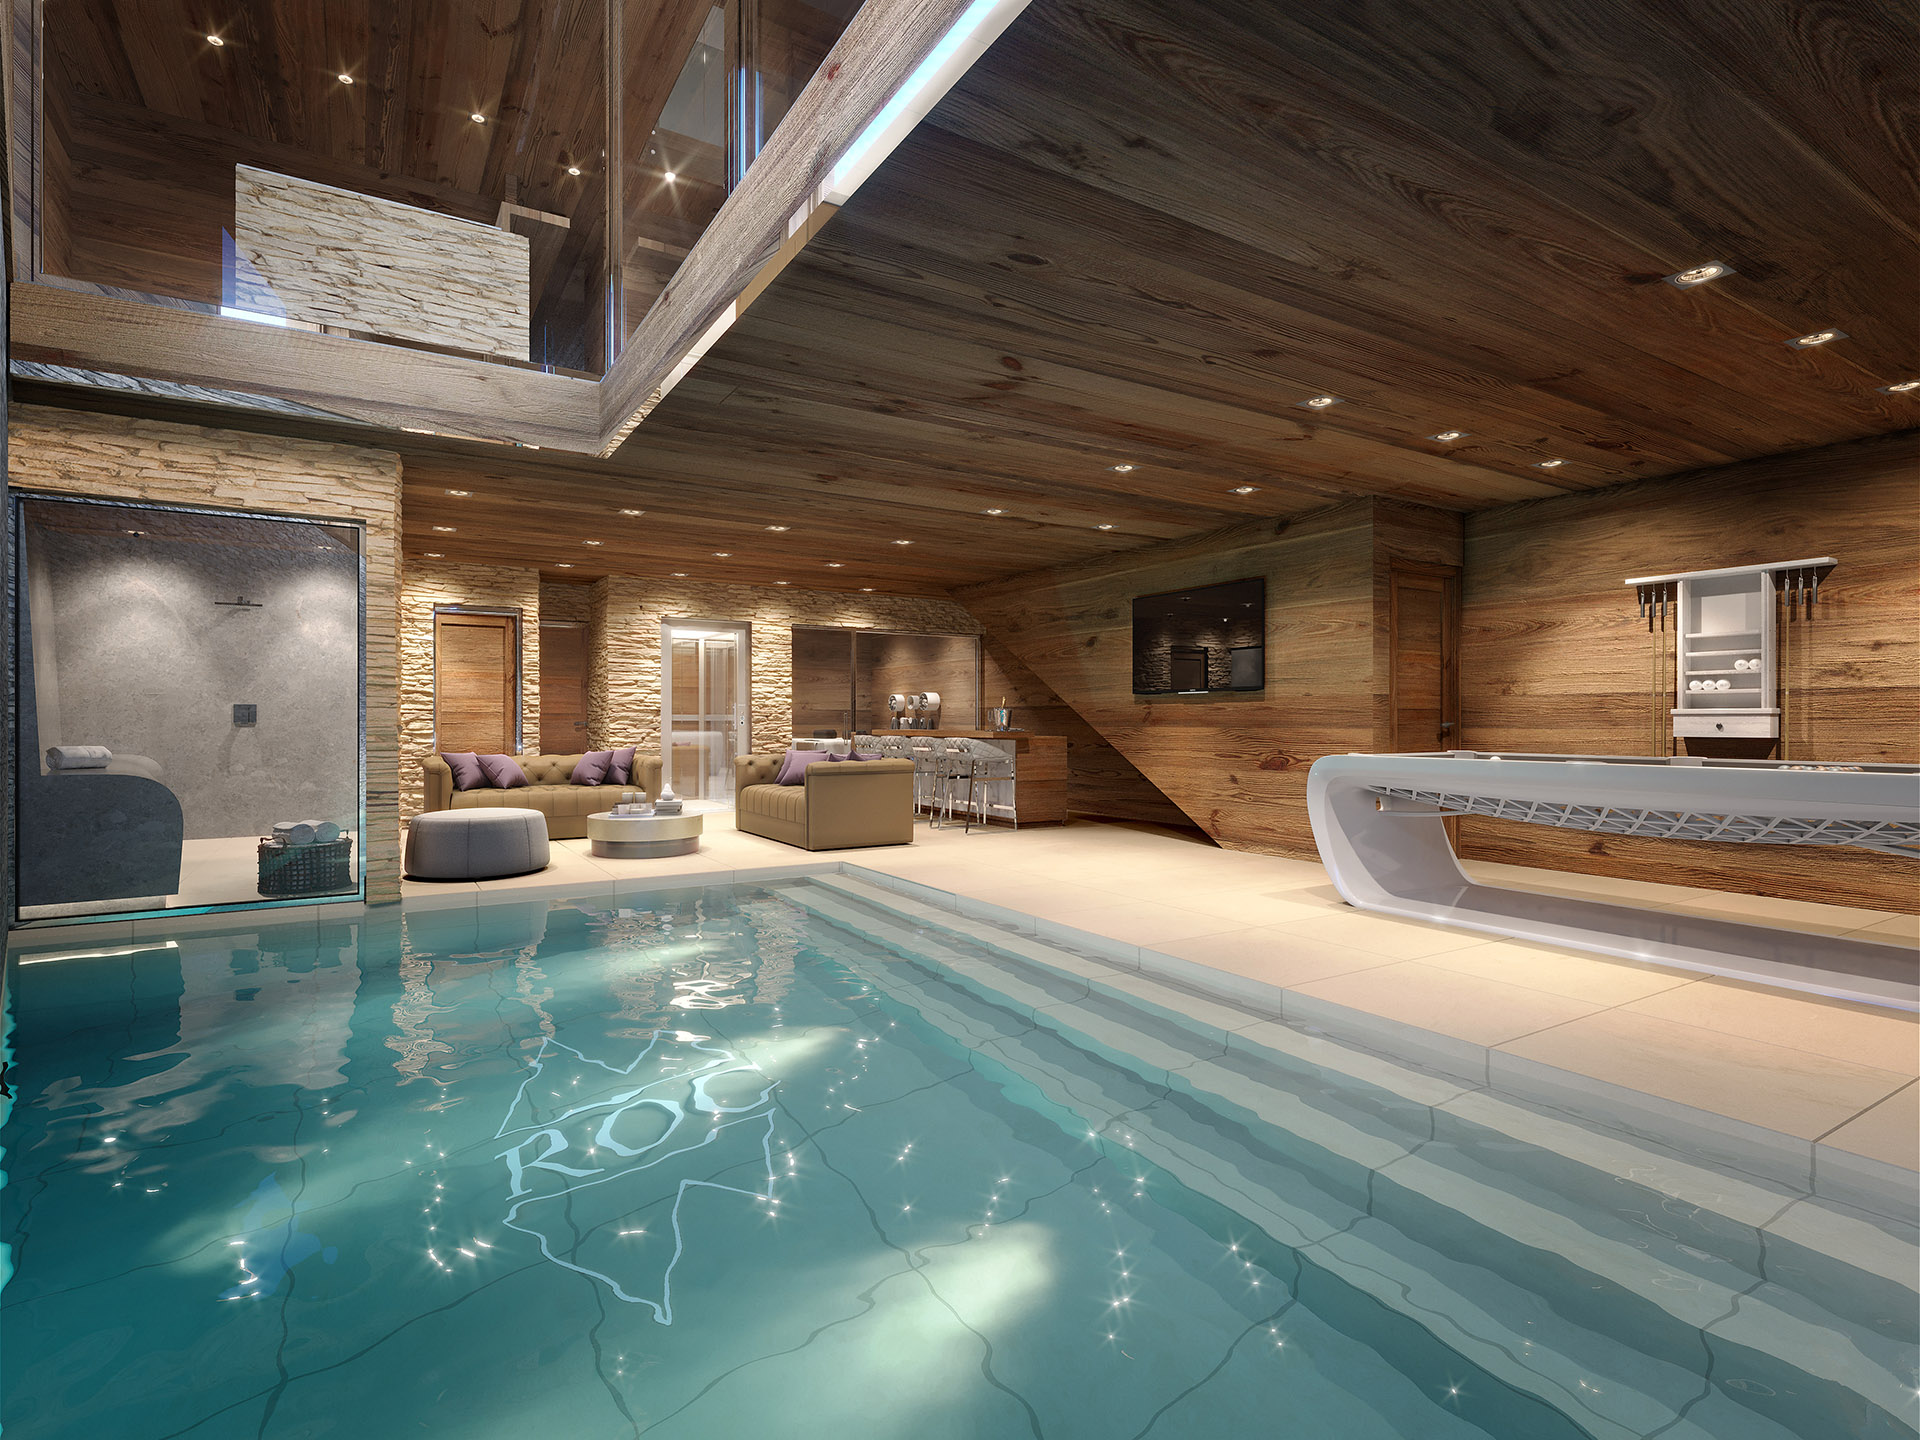 Photorealistic 3D representation of an indoor pool in a luxury chalet